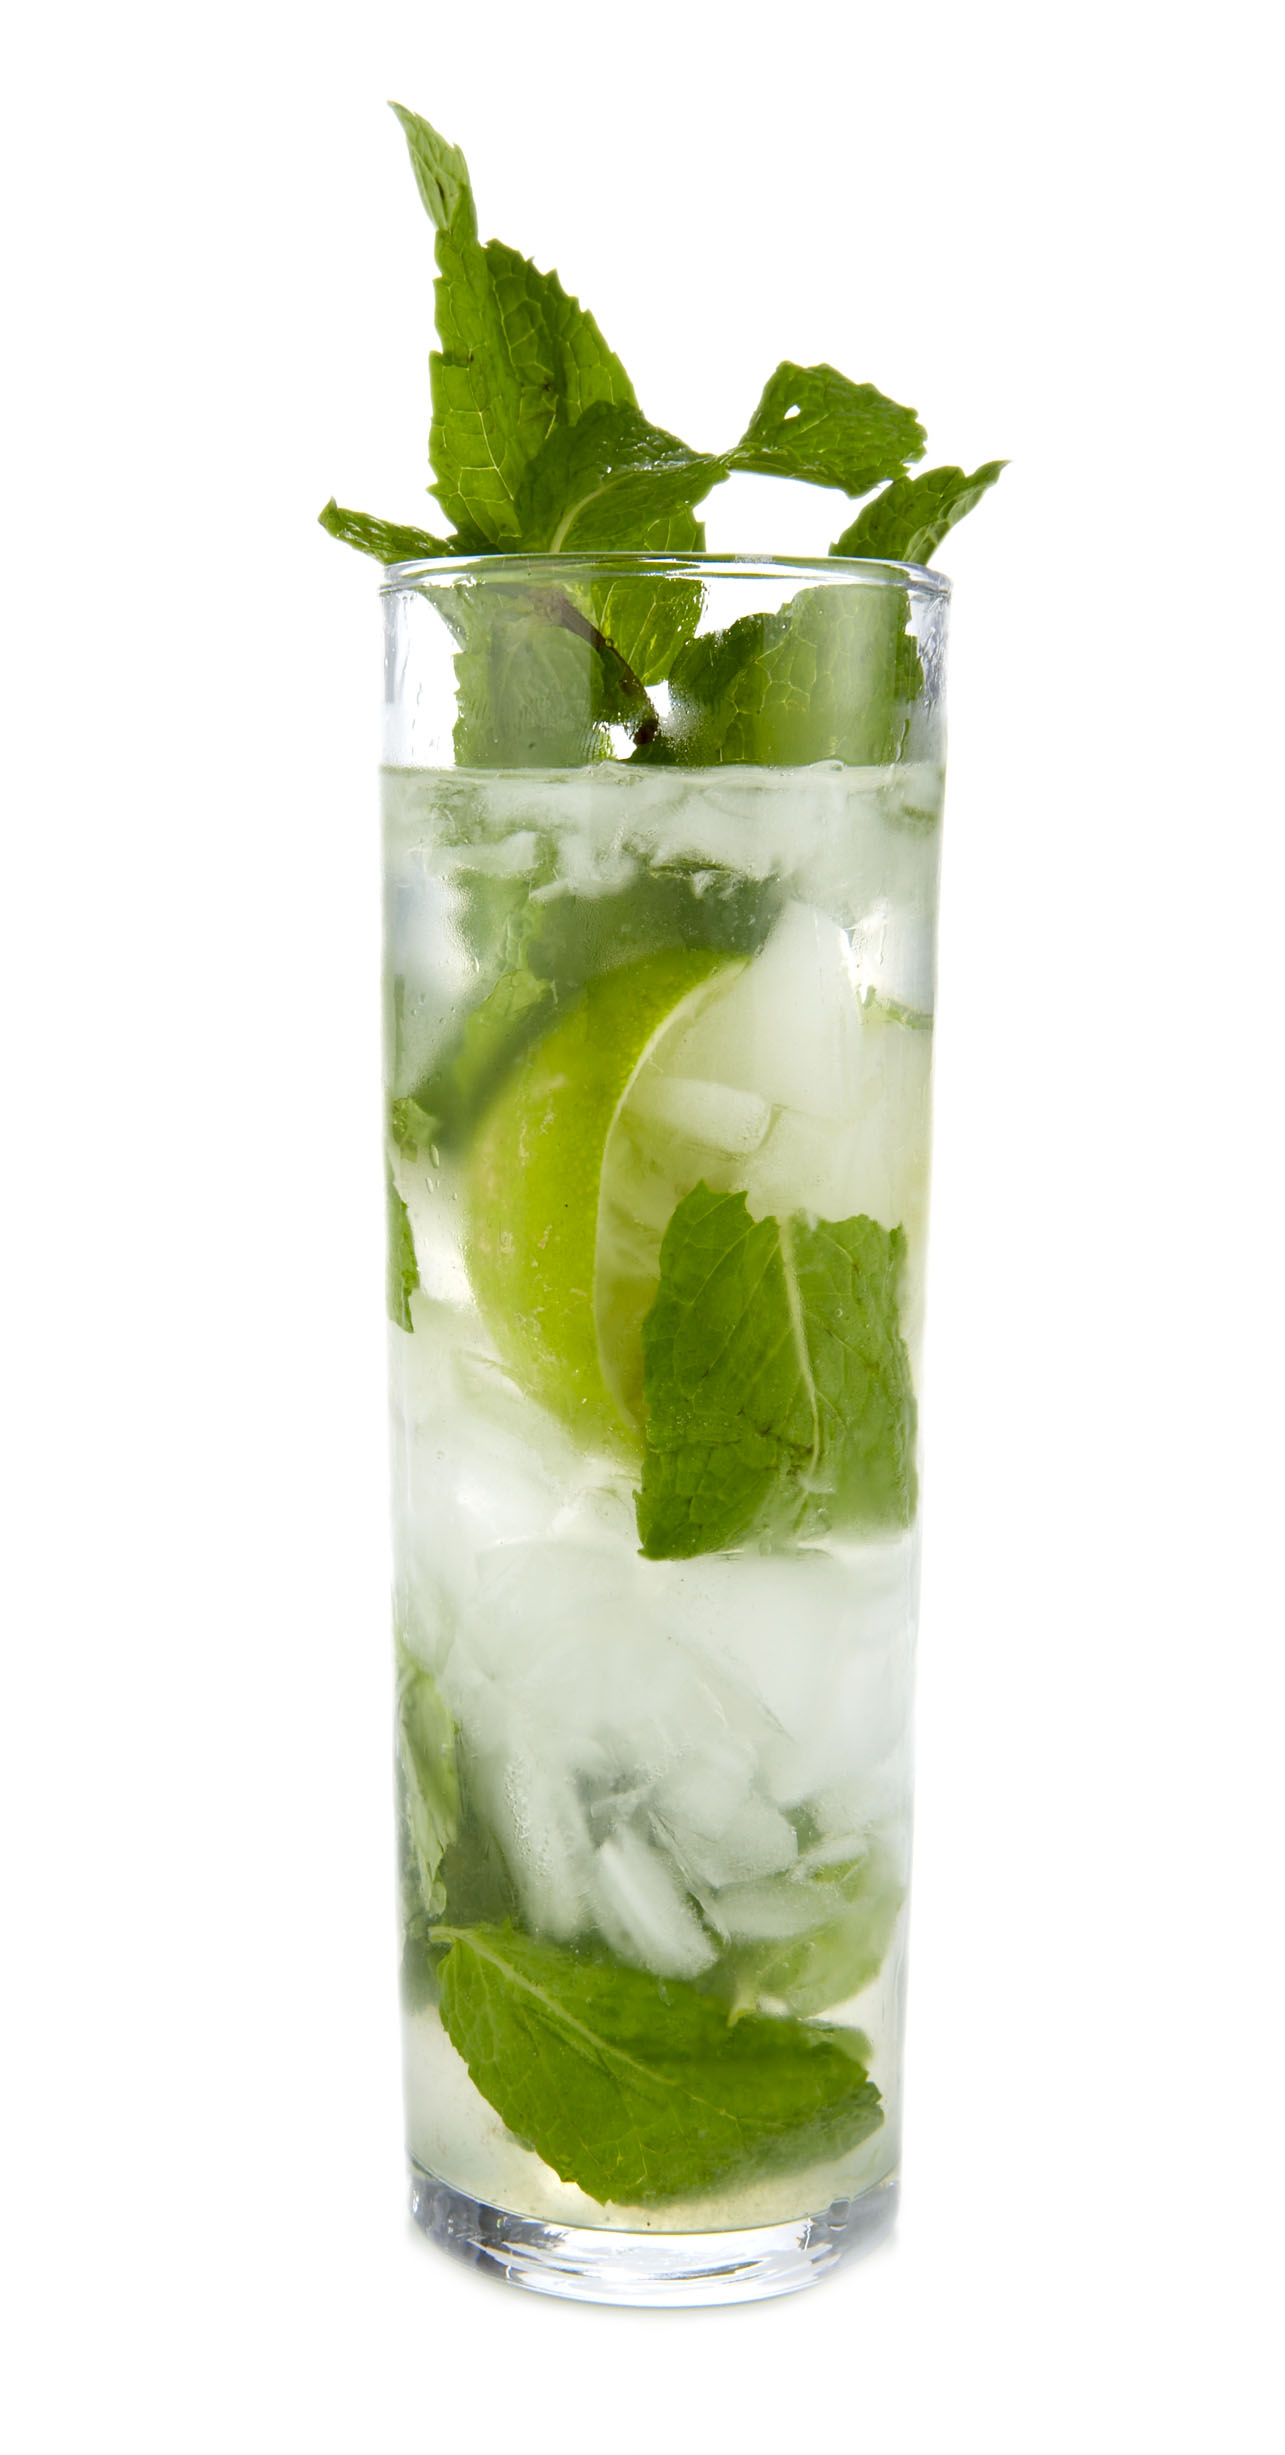 Best Mojito Recipe - How to Make a Mojito